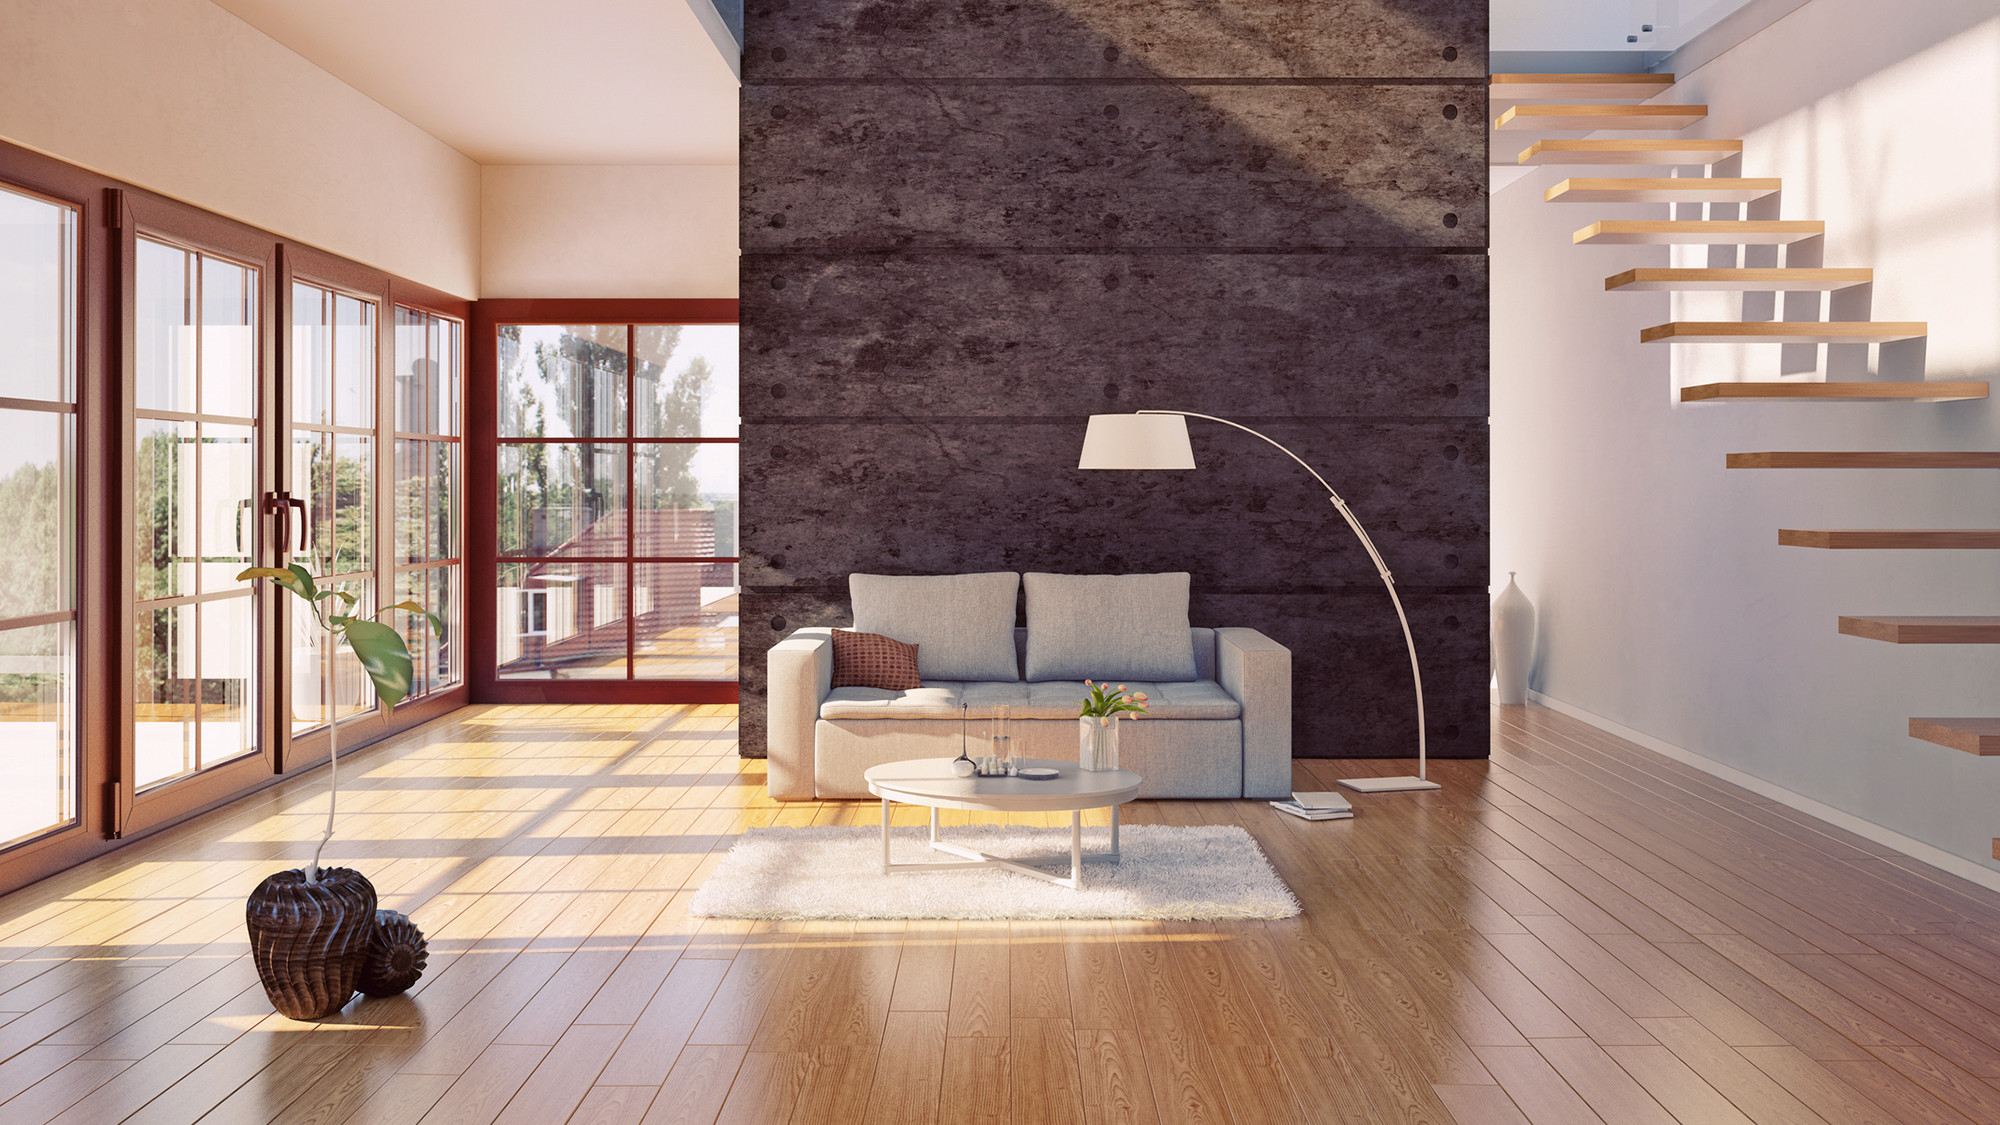 how to install hardwood flooring around stairs of do hardwood floors provide the best return on investment realtor coma with hardwood floors investment